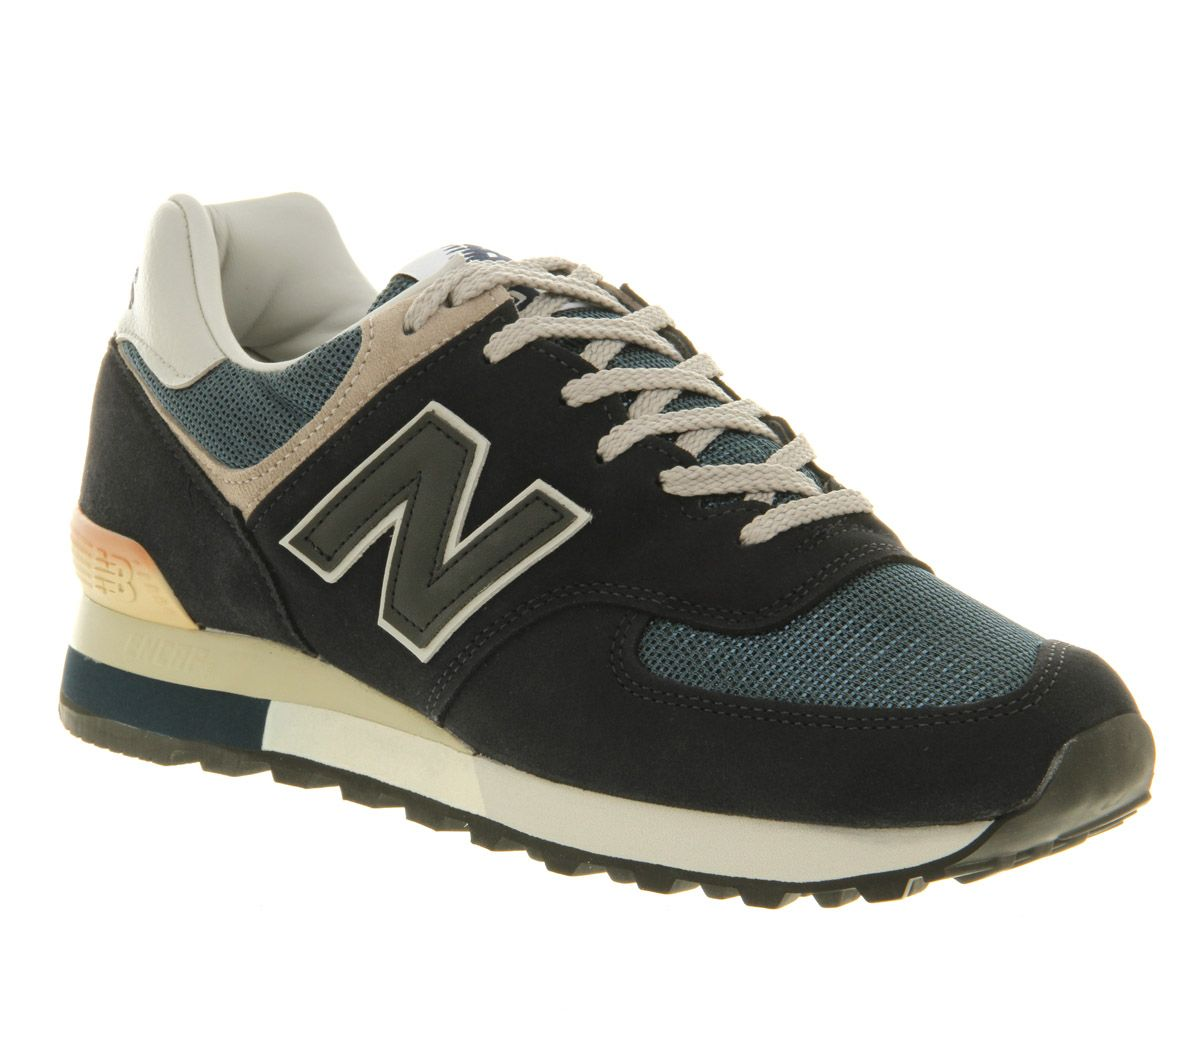 New Balance 576 Navy Grey 25th Anniversary - His trainers